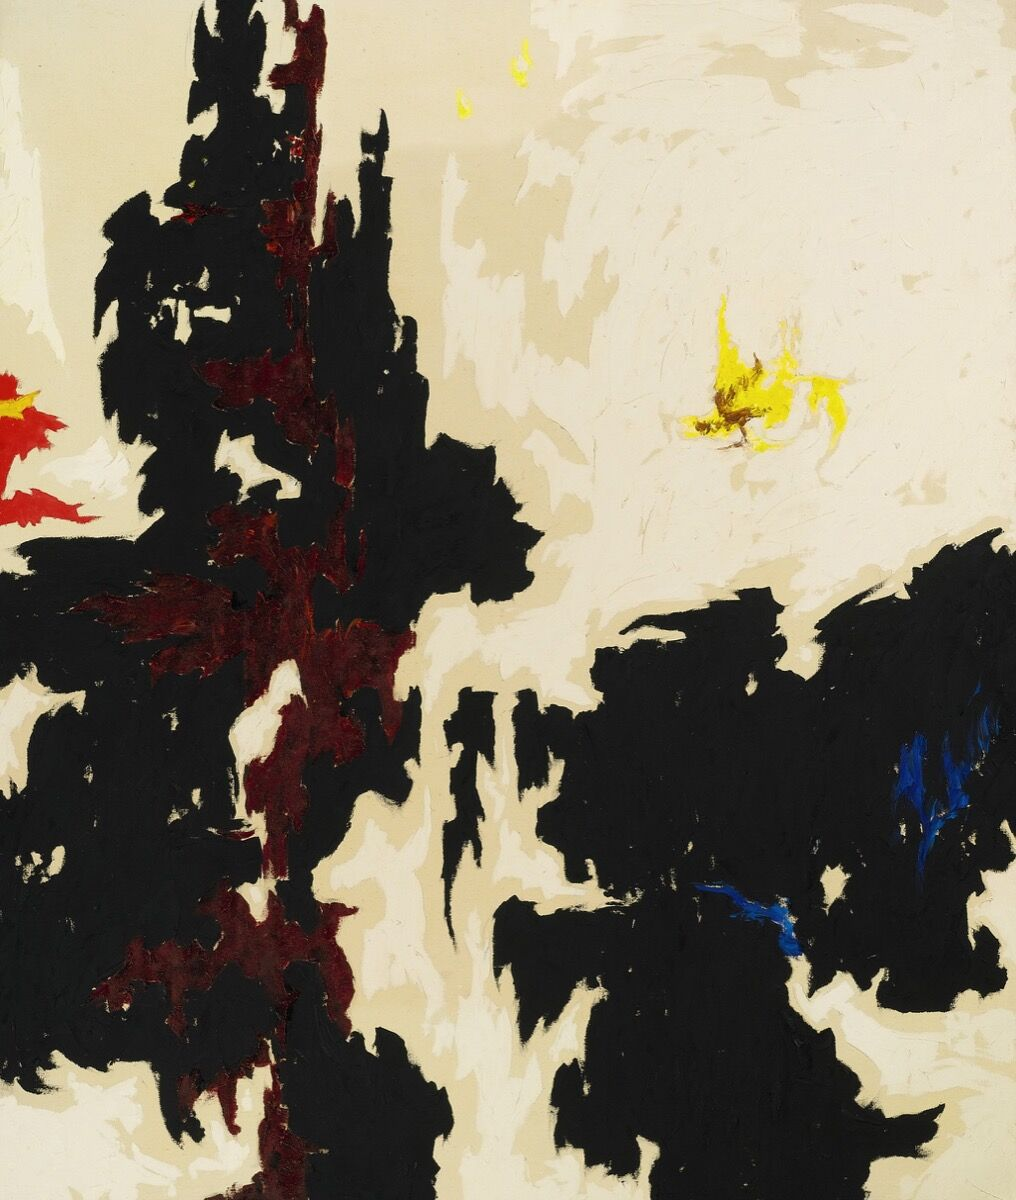 Clyfford Still, 1947-Y-No. 2. Courtesy of Sotheby's.